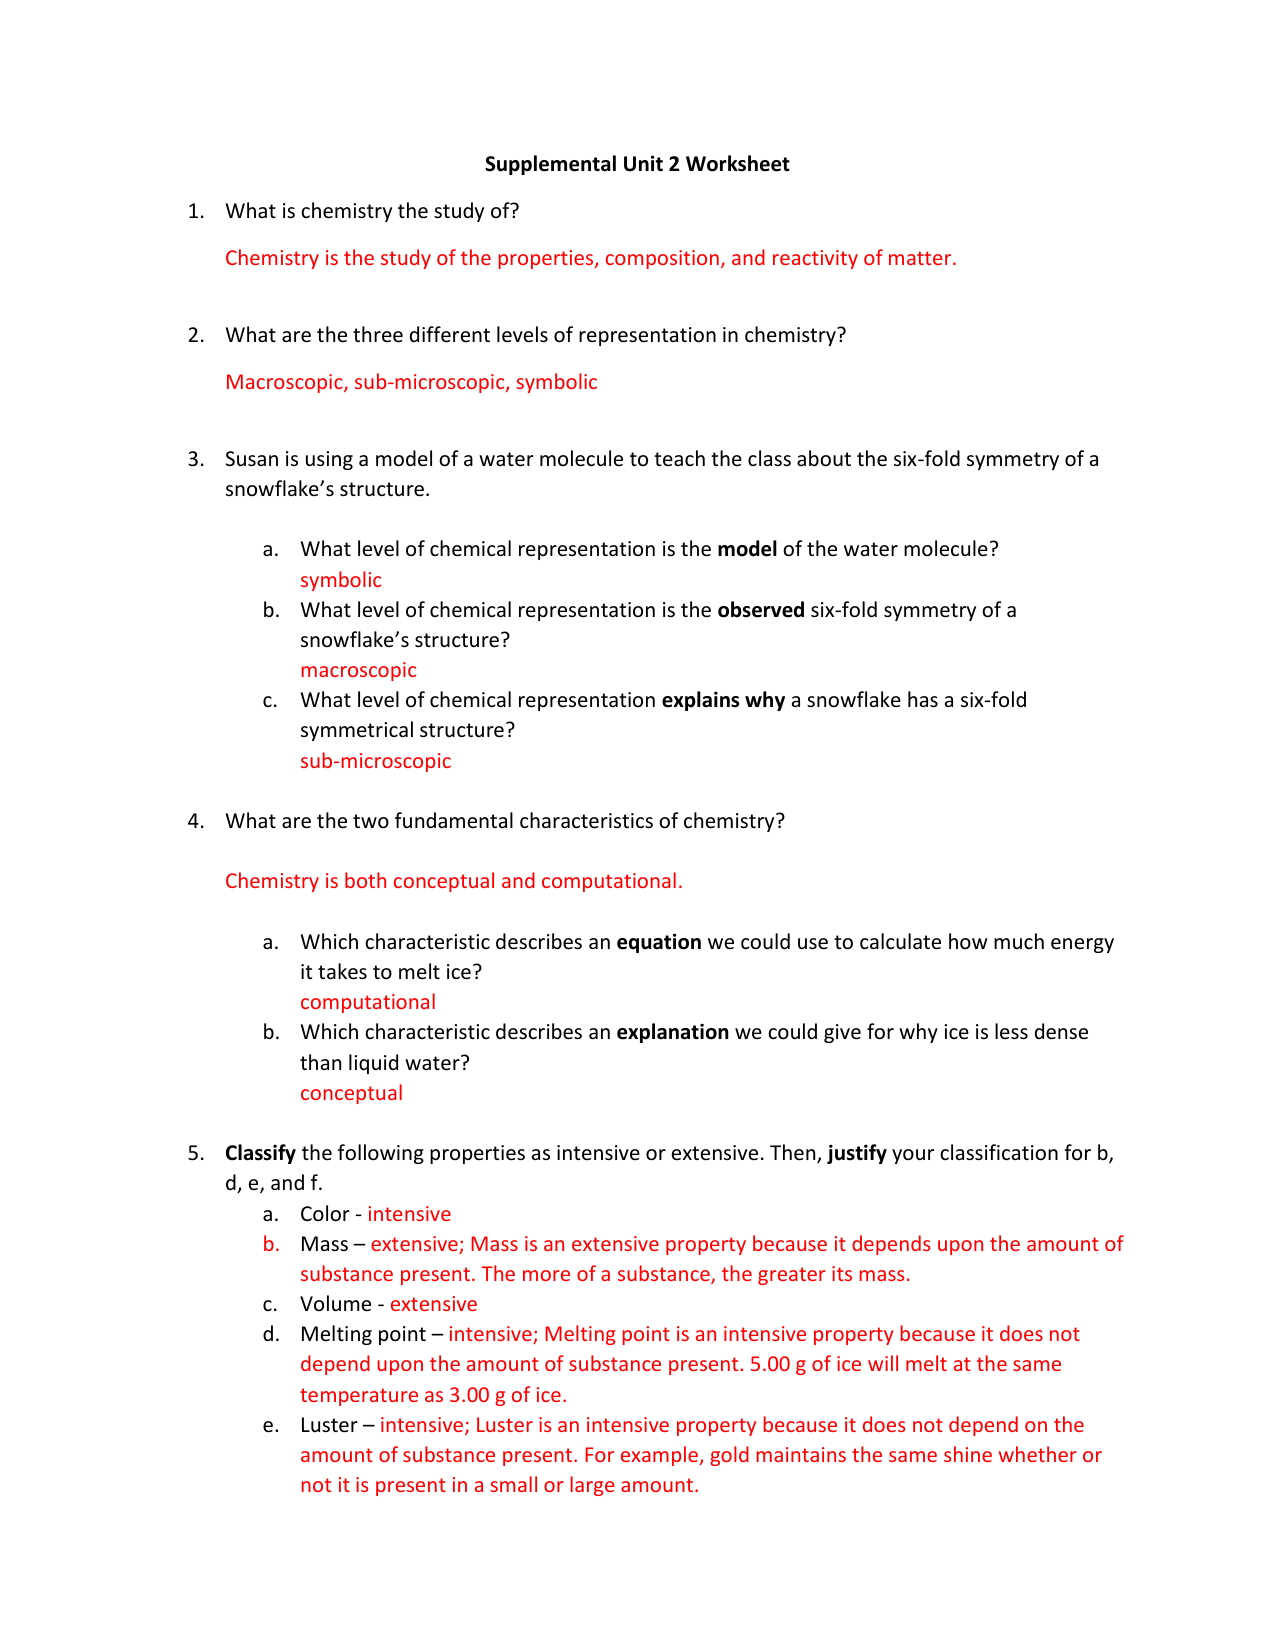 Unit 2 Worksheet 1 Chemistry Answers